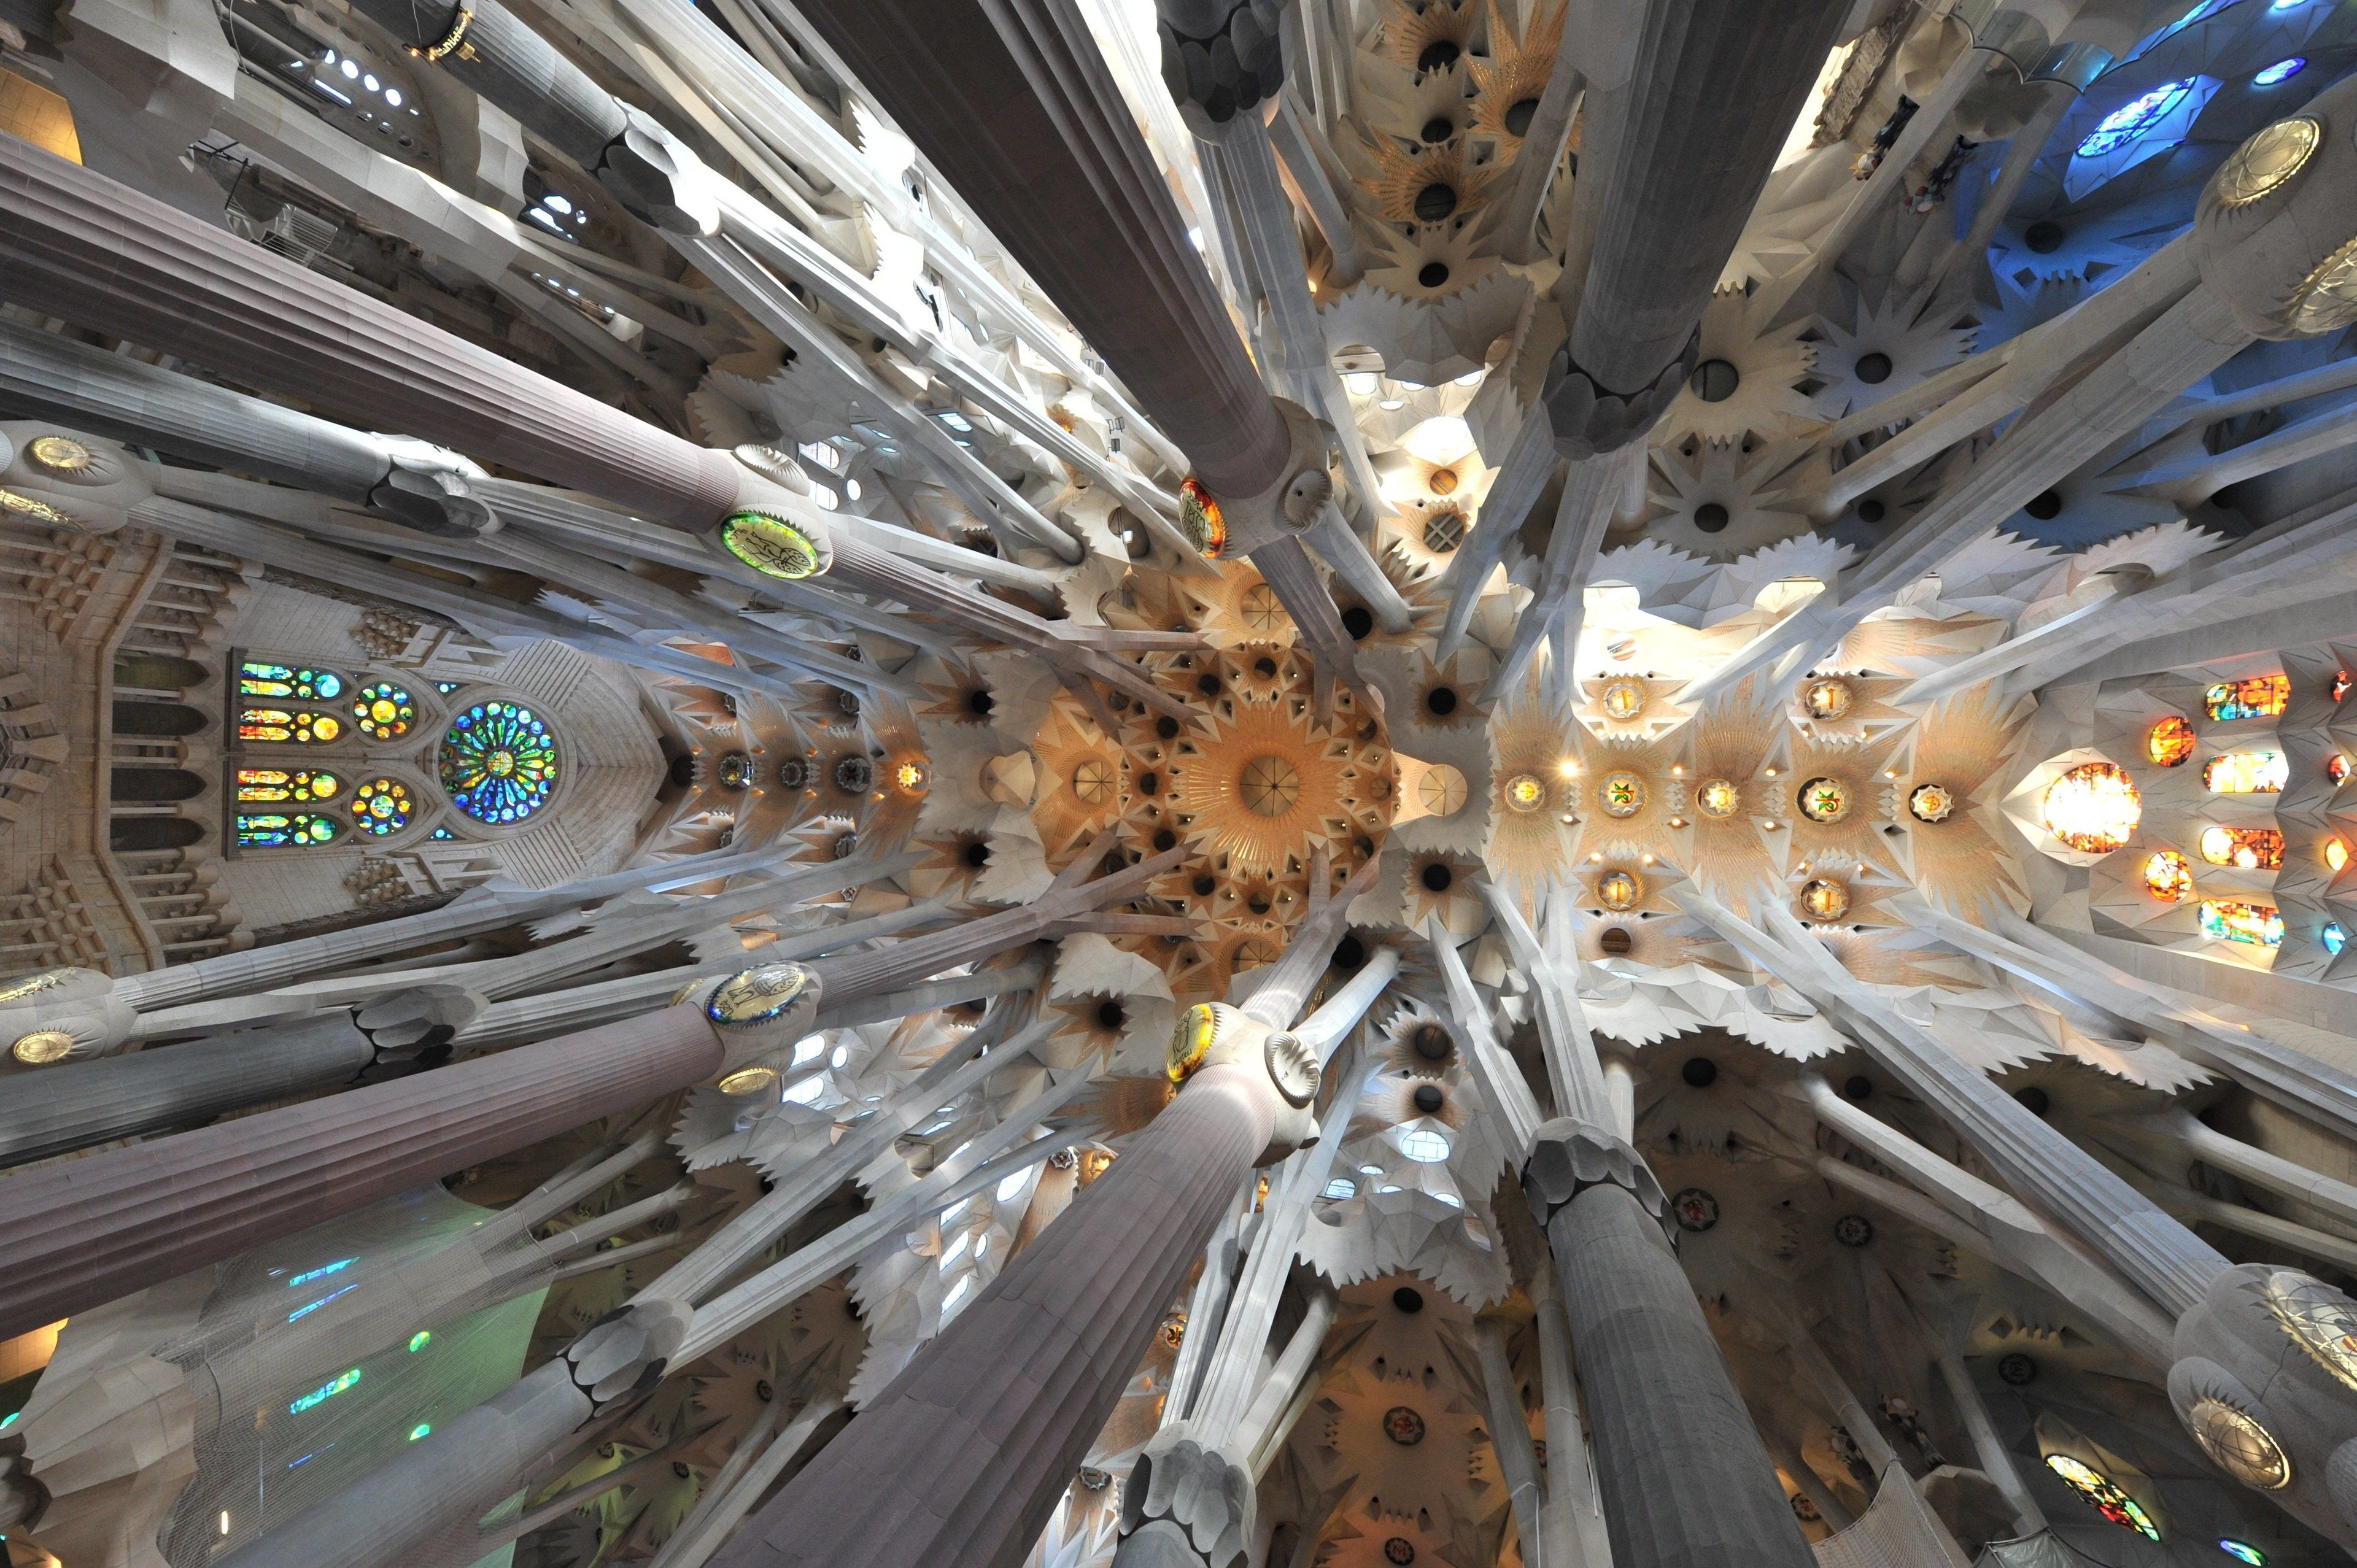 barcelona-spain-times-monument-wallpaper.jpg